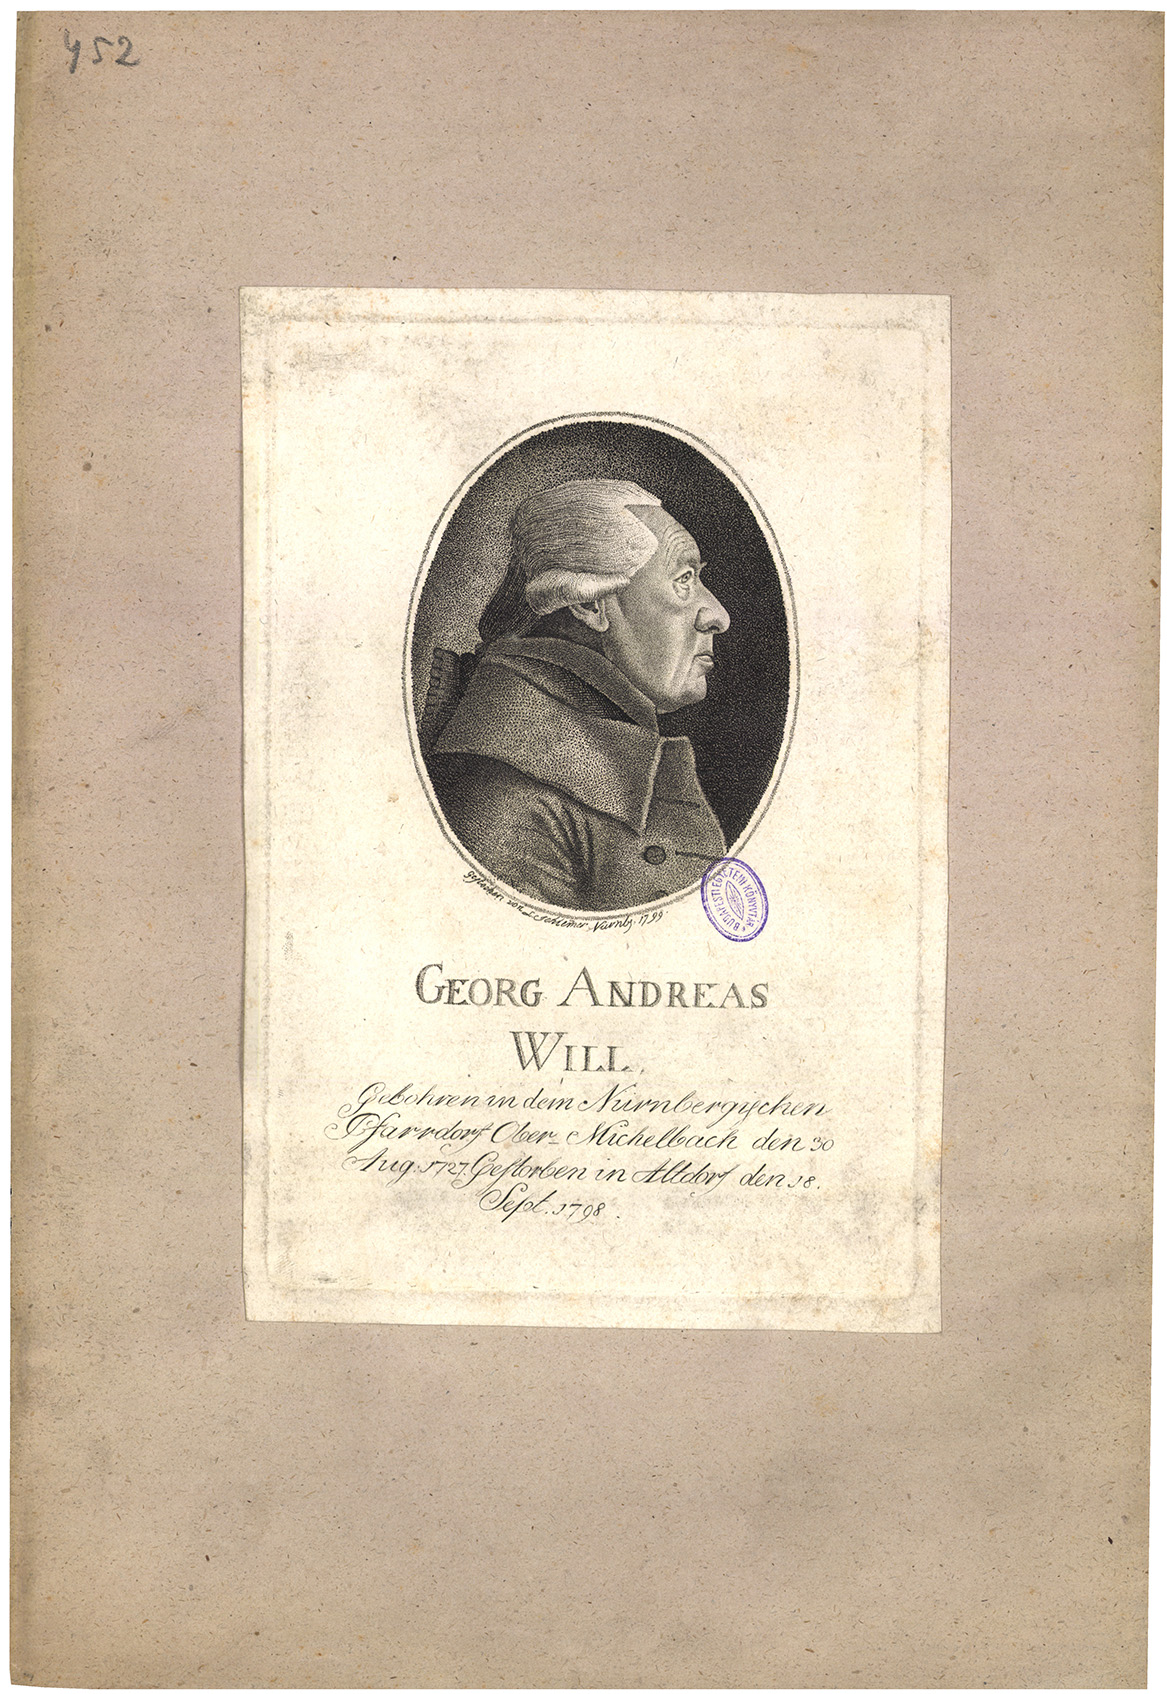 Georg Andreas Will